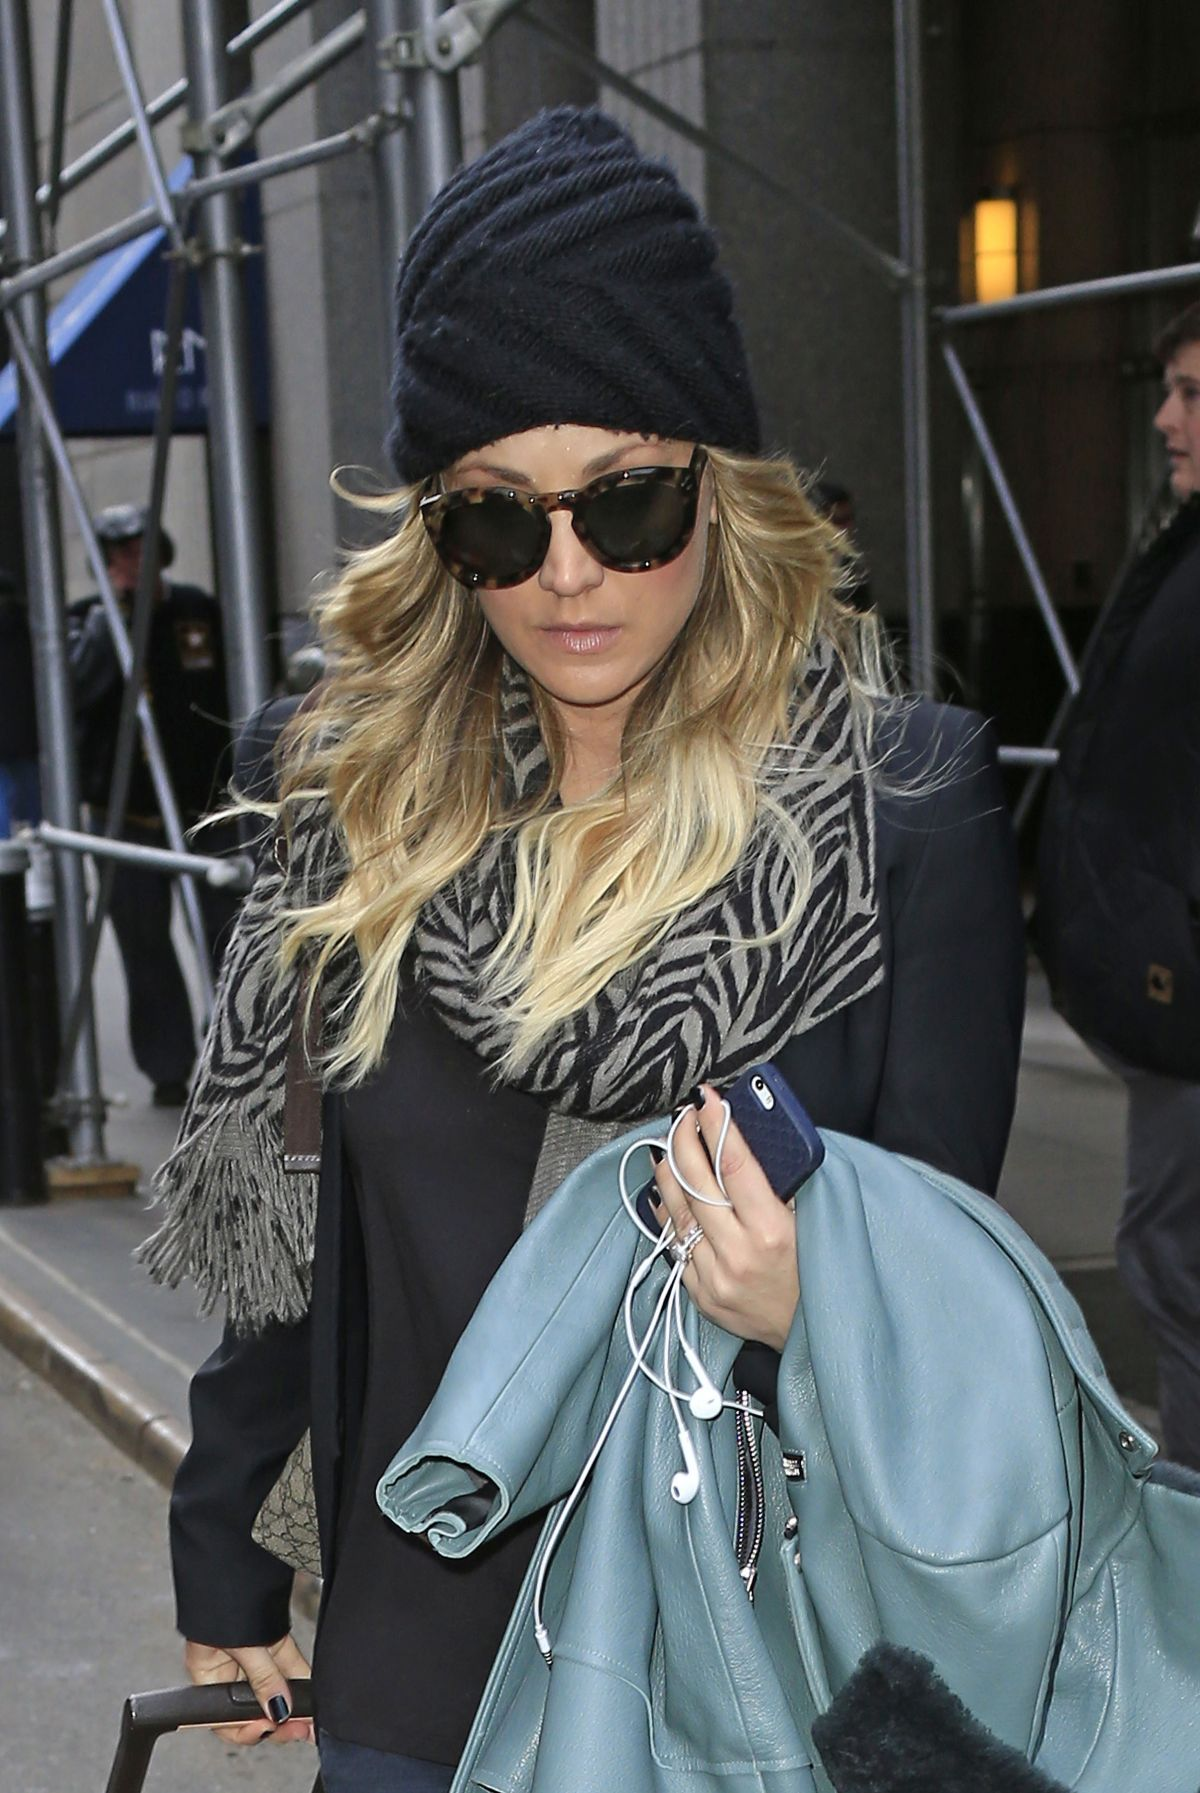 Kaley Cuoco Checking Out Of The London Hotel In New York City Celebzz Celebzz